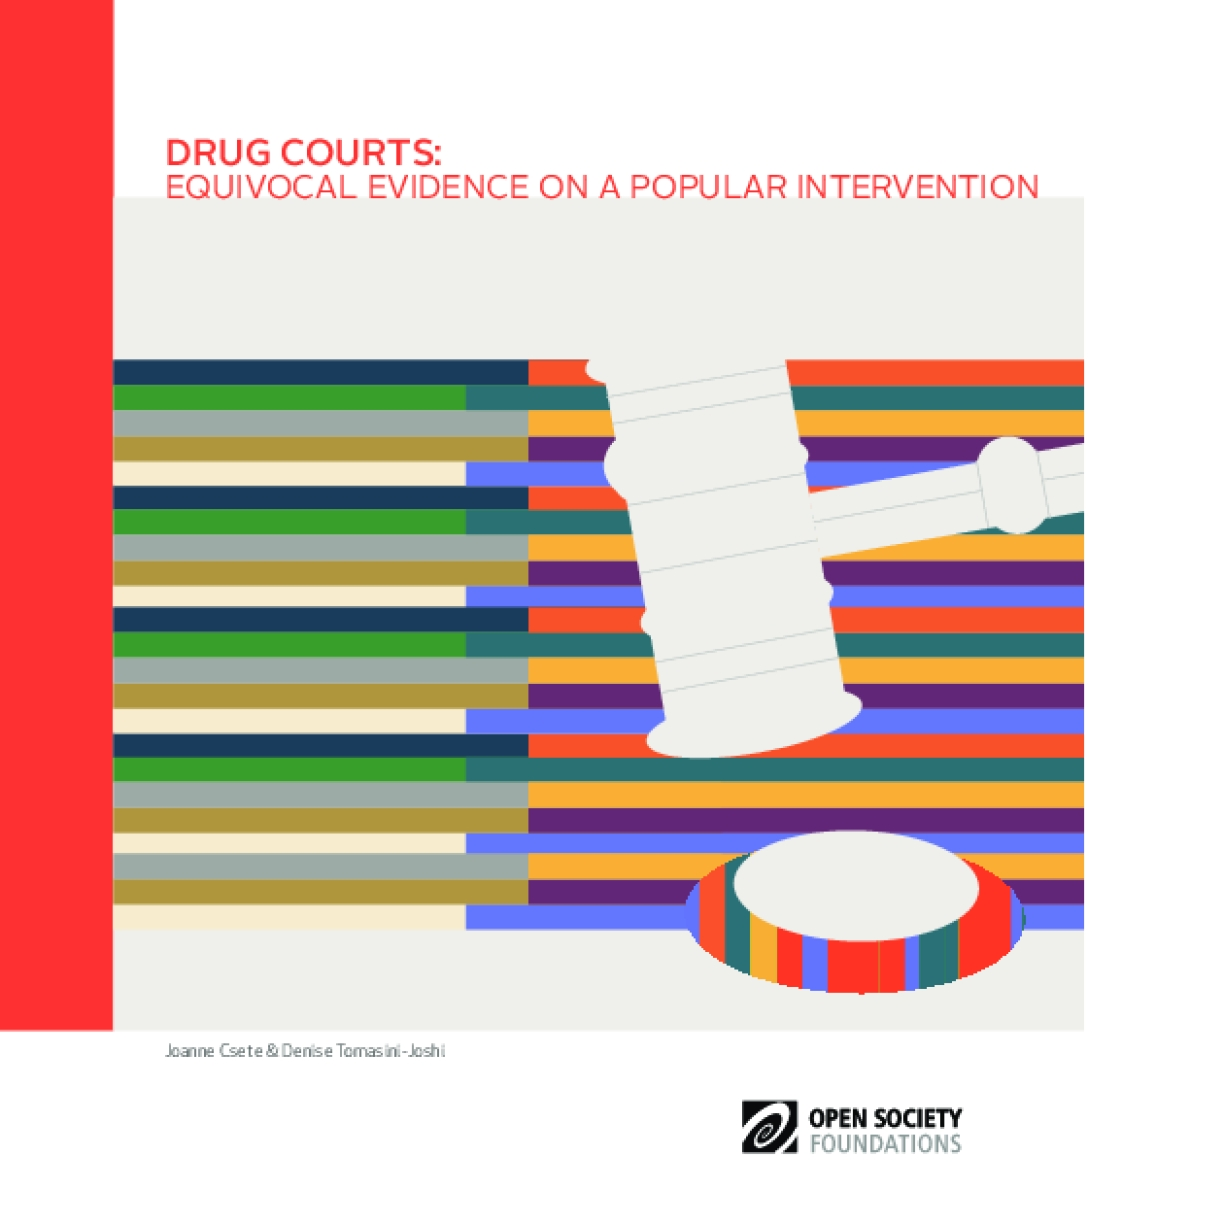 Drug Courts: Equivocal Evidence on a Popular Intervention